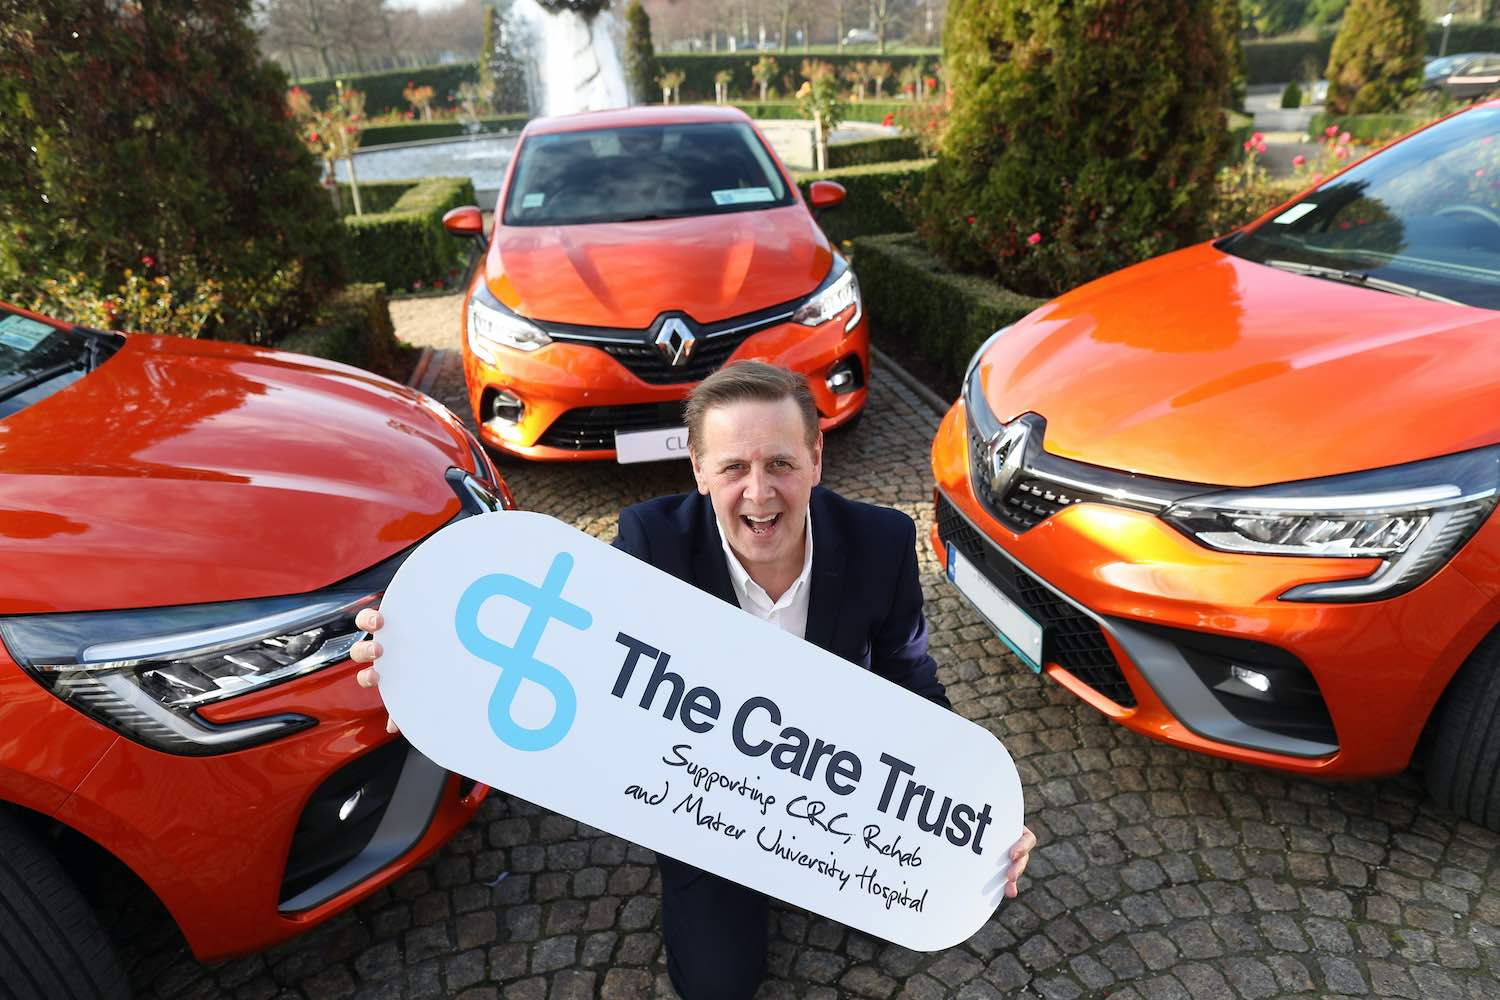 Car News | Renault to partner with The Care Trust | CompleteCar.ie